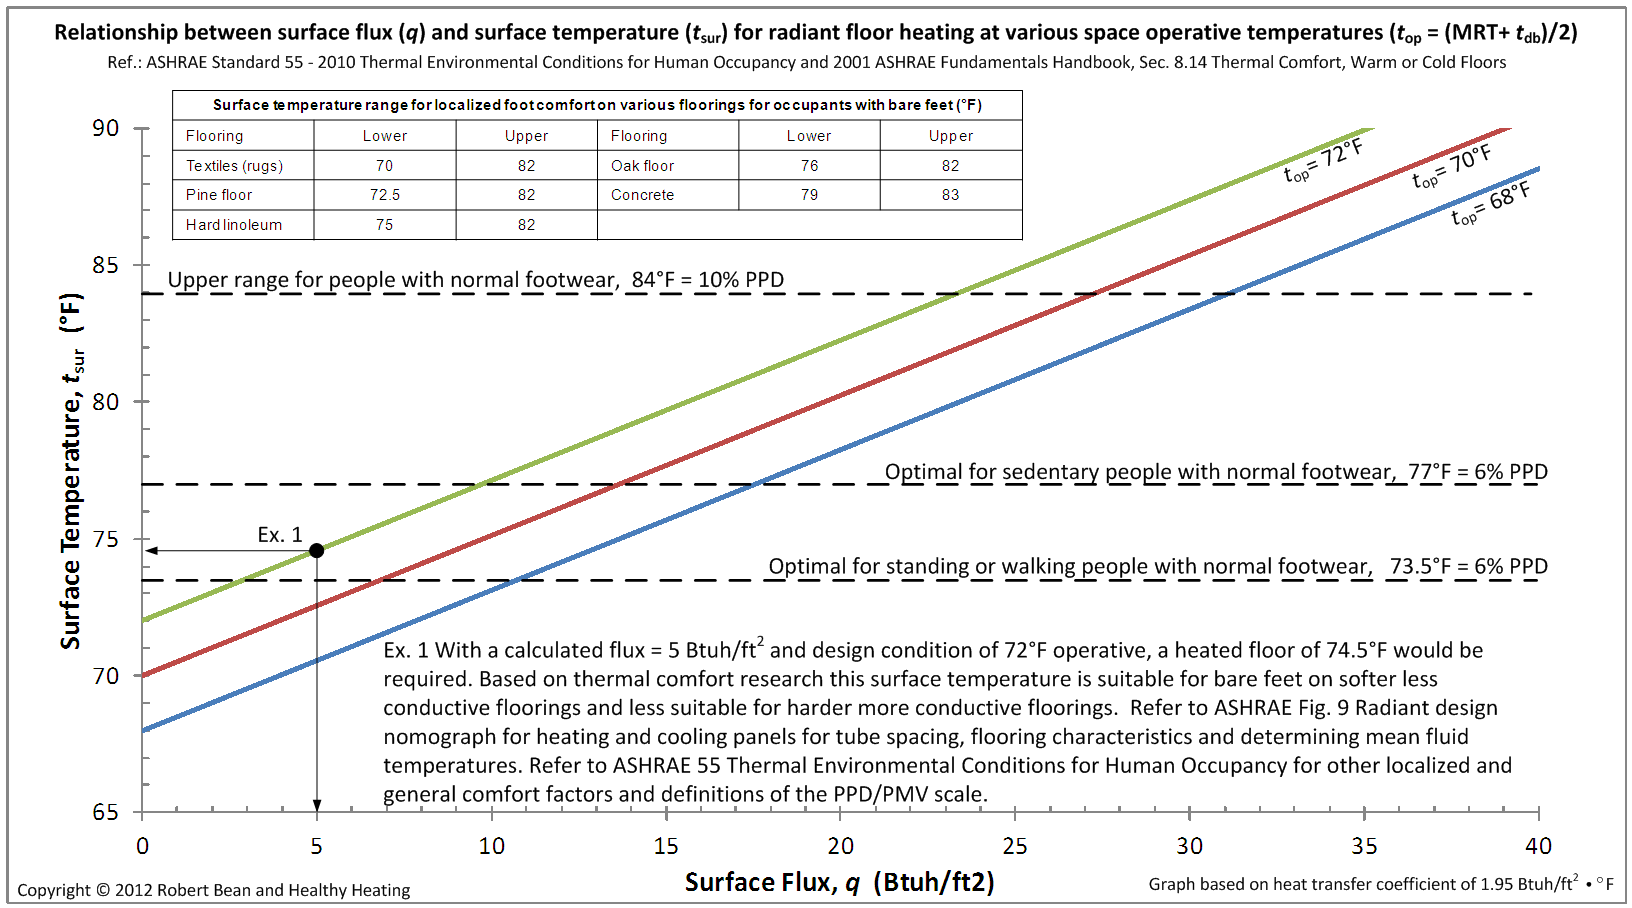 Relationship between heating flux and surface temperatures at various  operative temperatures (click image to enlarge).